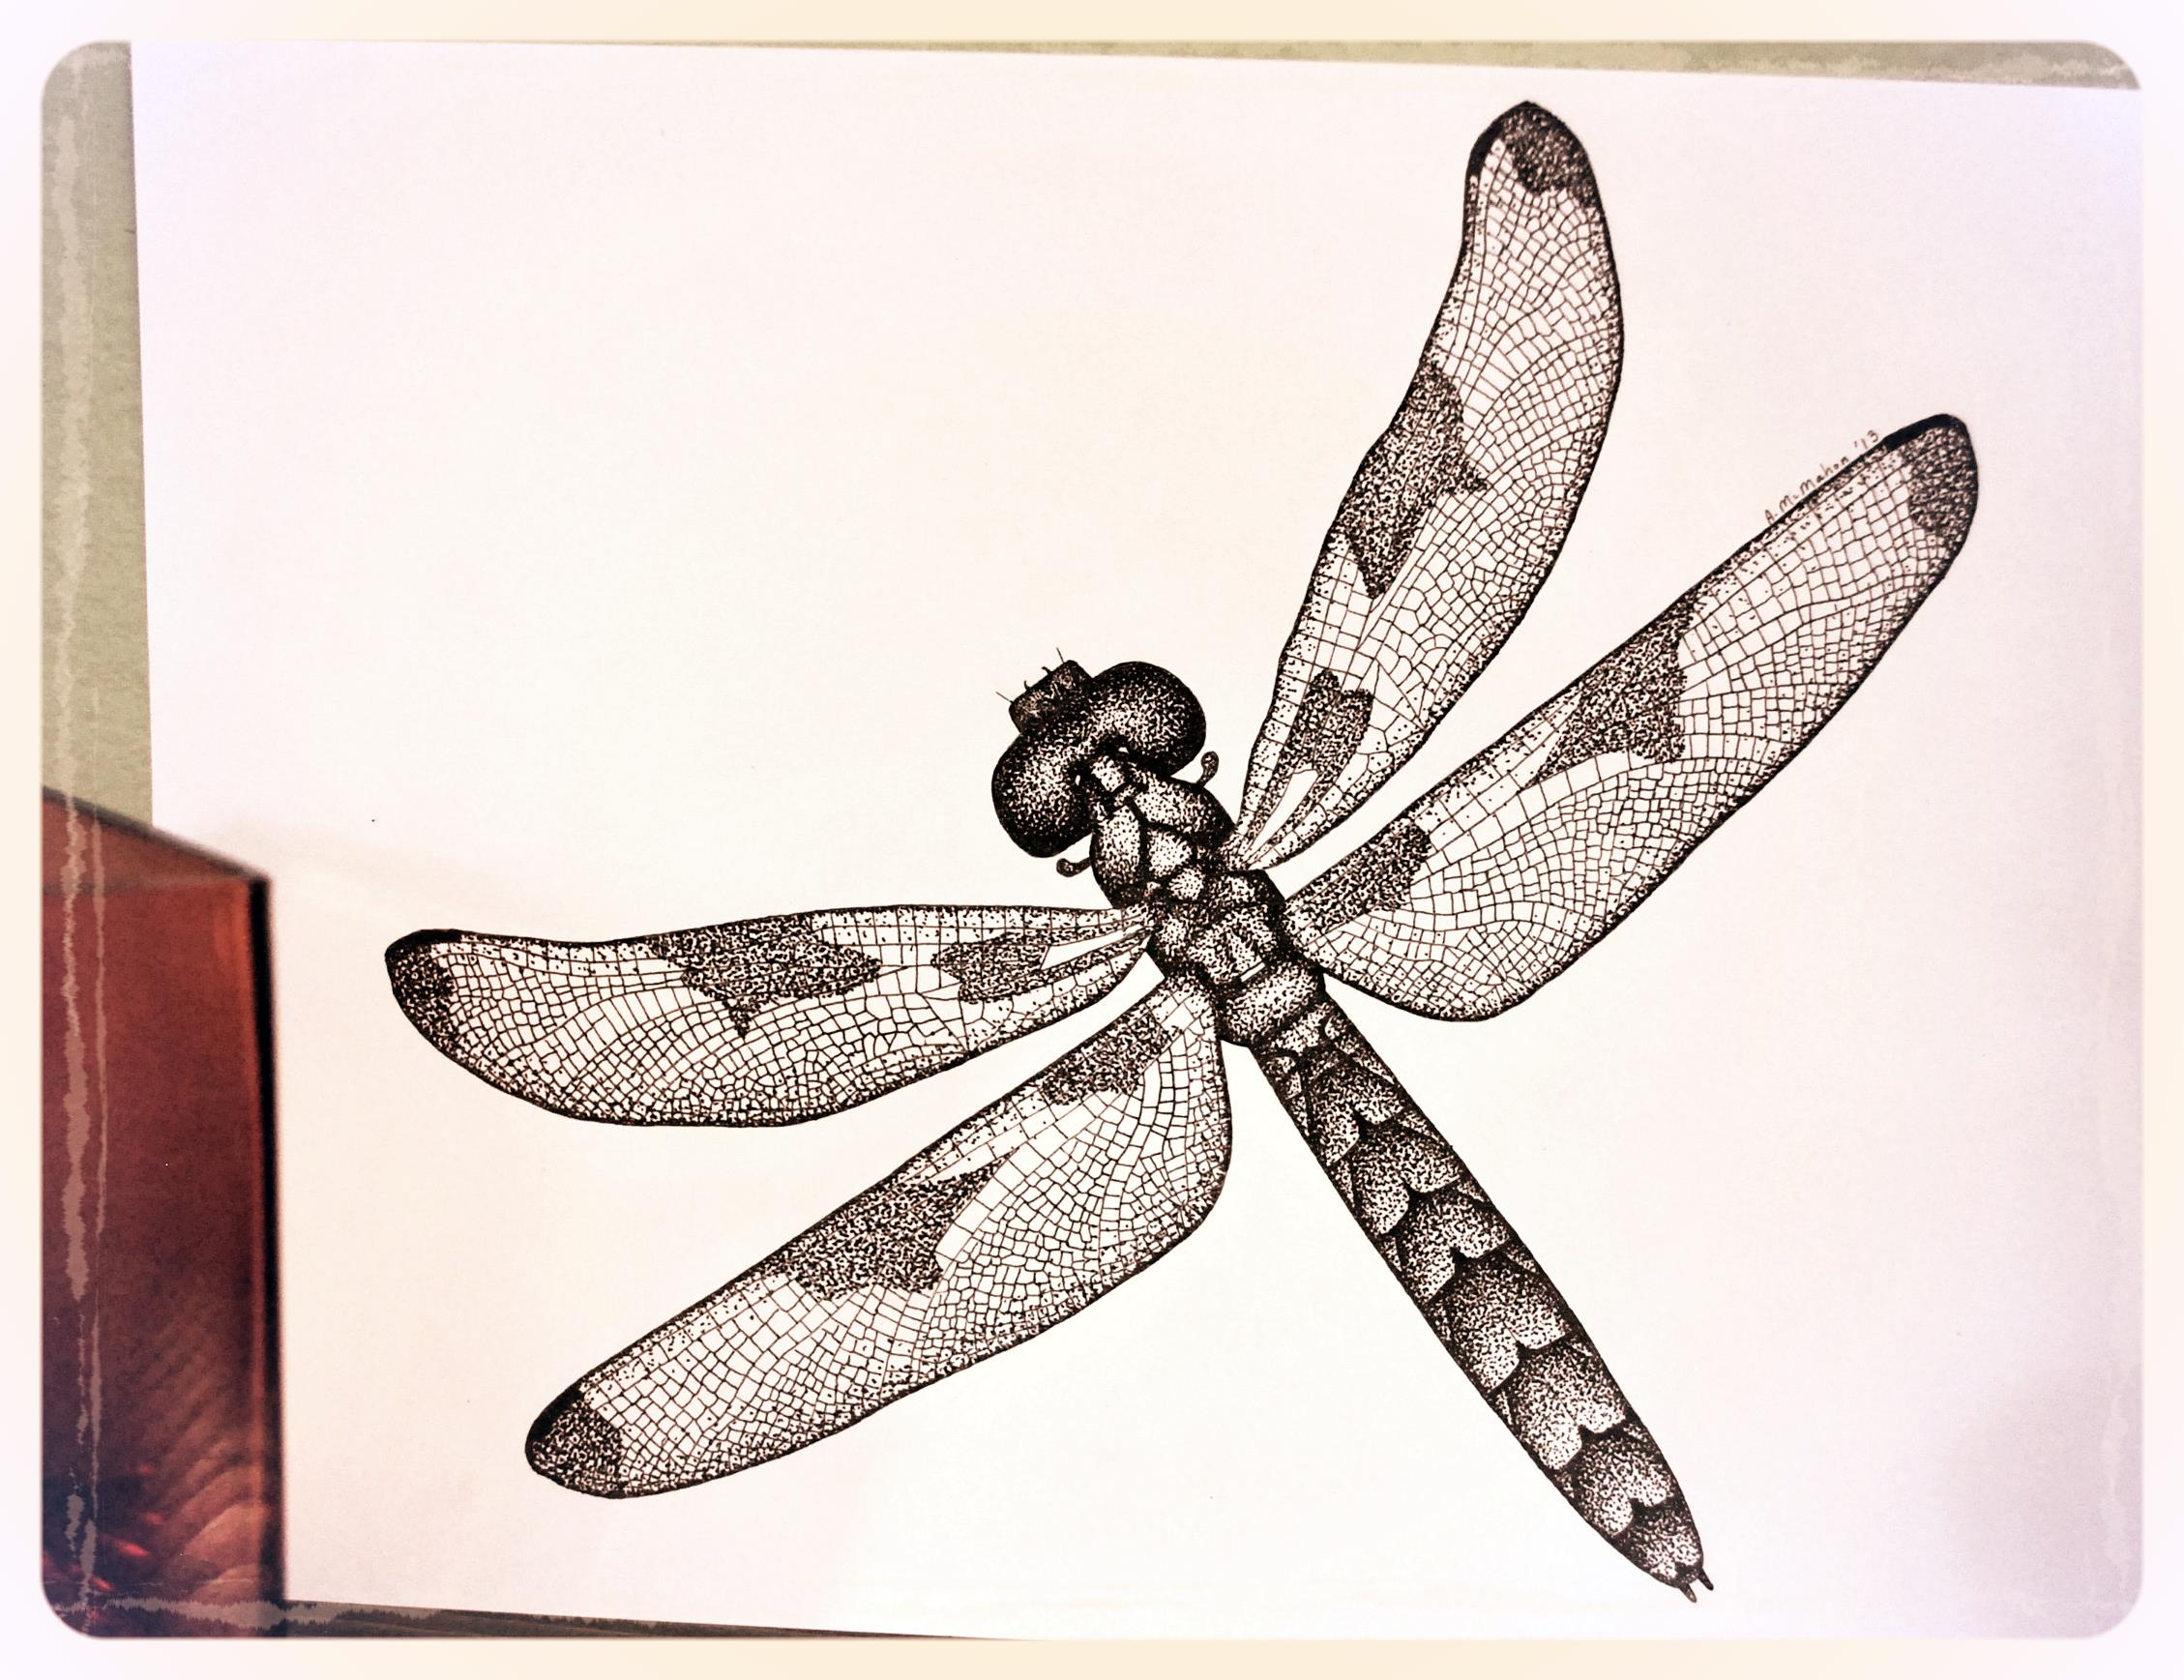 Common Whitetail Dragonfly (Female) - Libellula lydia